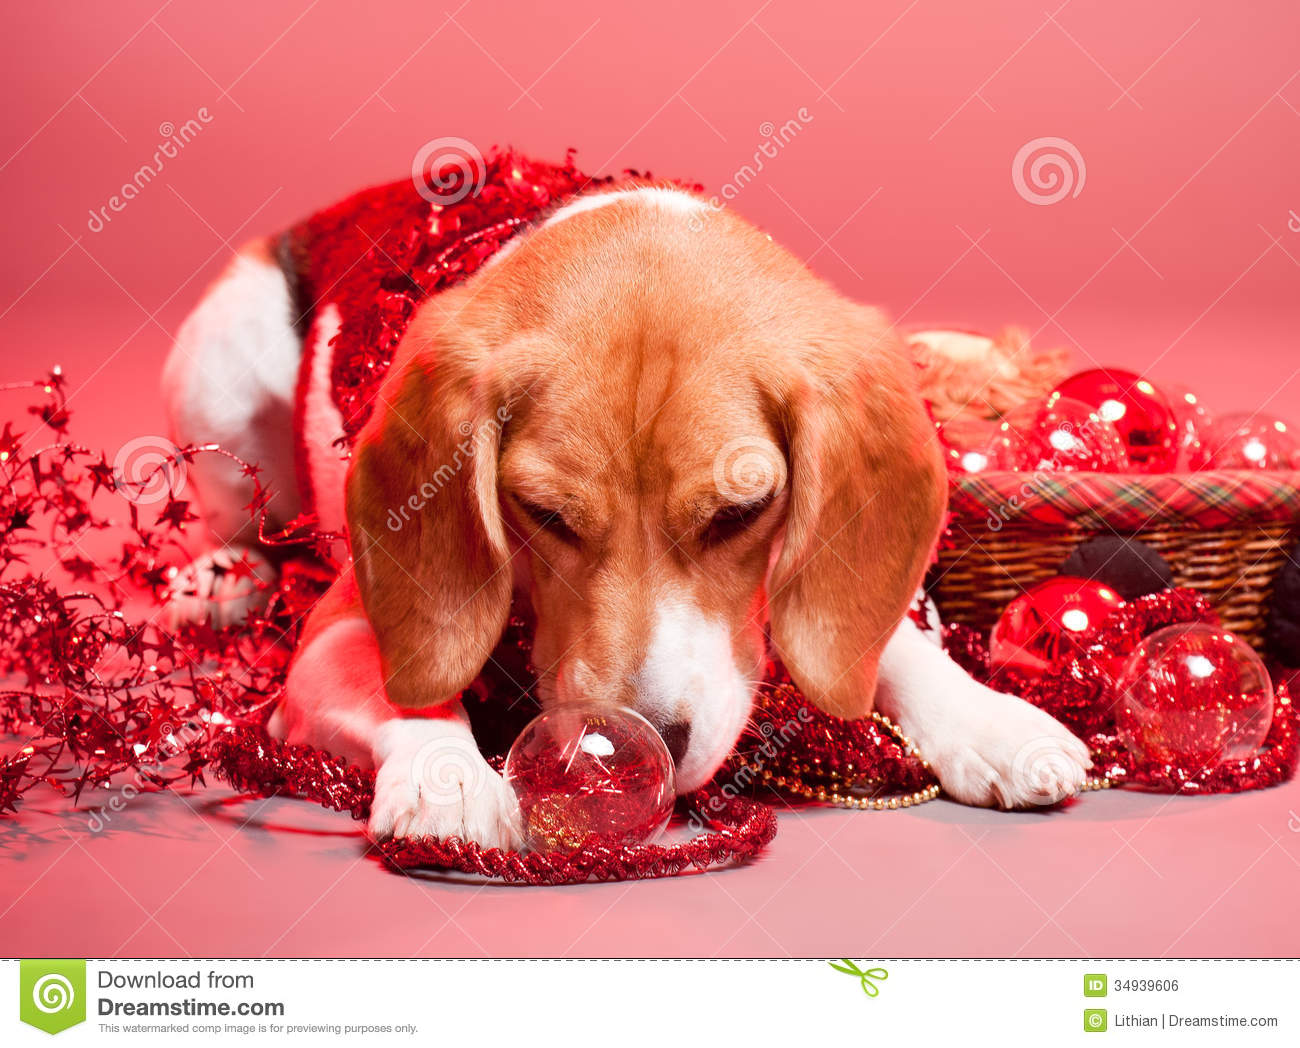 Cute Dog Christmas Pics Wallpaper Christmas Beagle Stock Photo Image Of Canine Happy